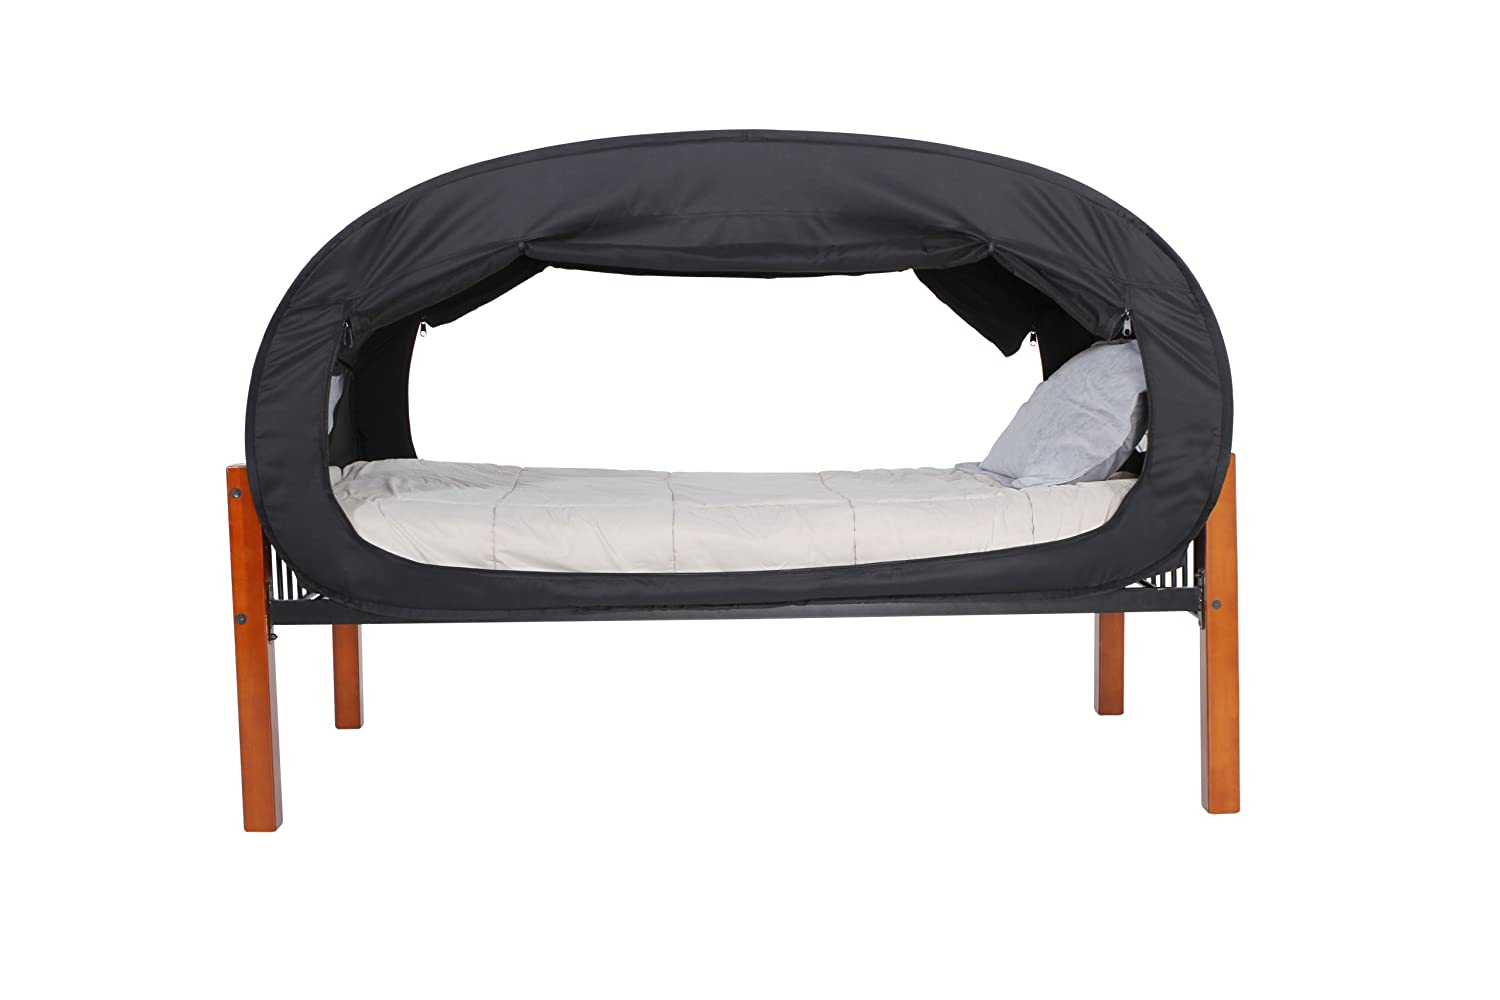 sc 1 st  Amazon.com & Amazon.com: Privacy Pop Bed Tent (Twin Bunk) - BLACK: Toys u0026 Games